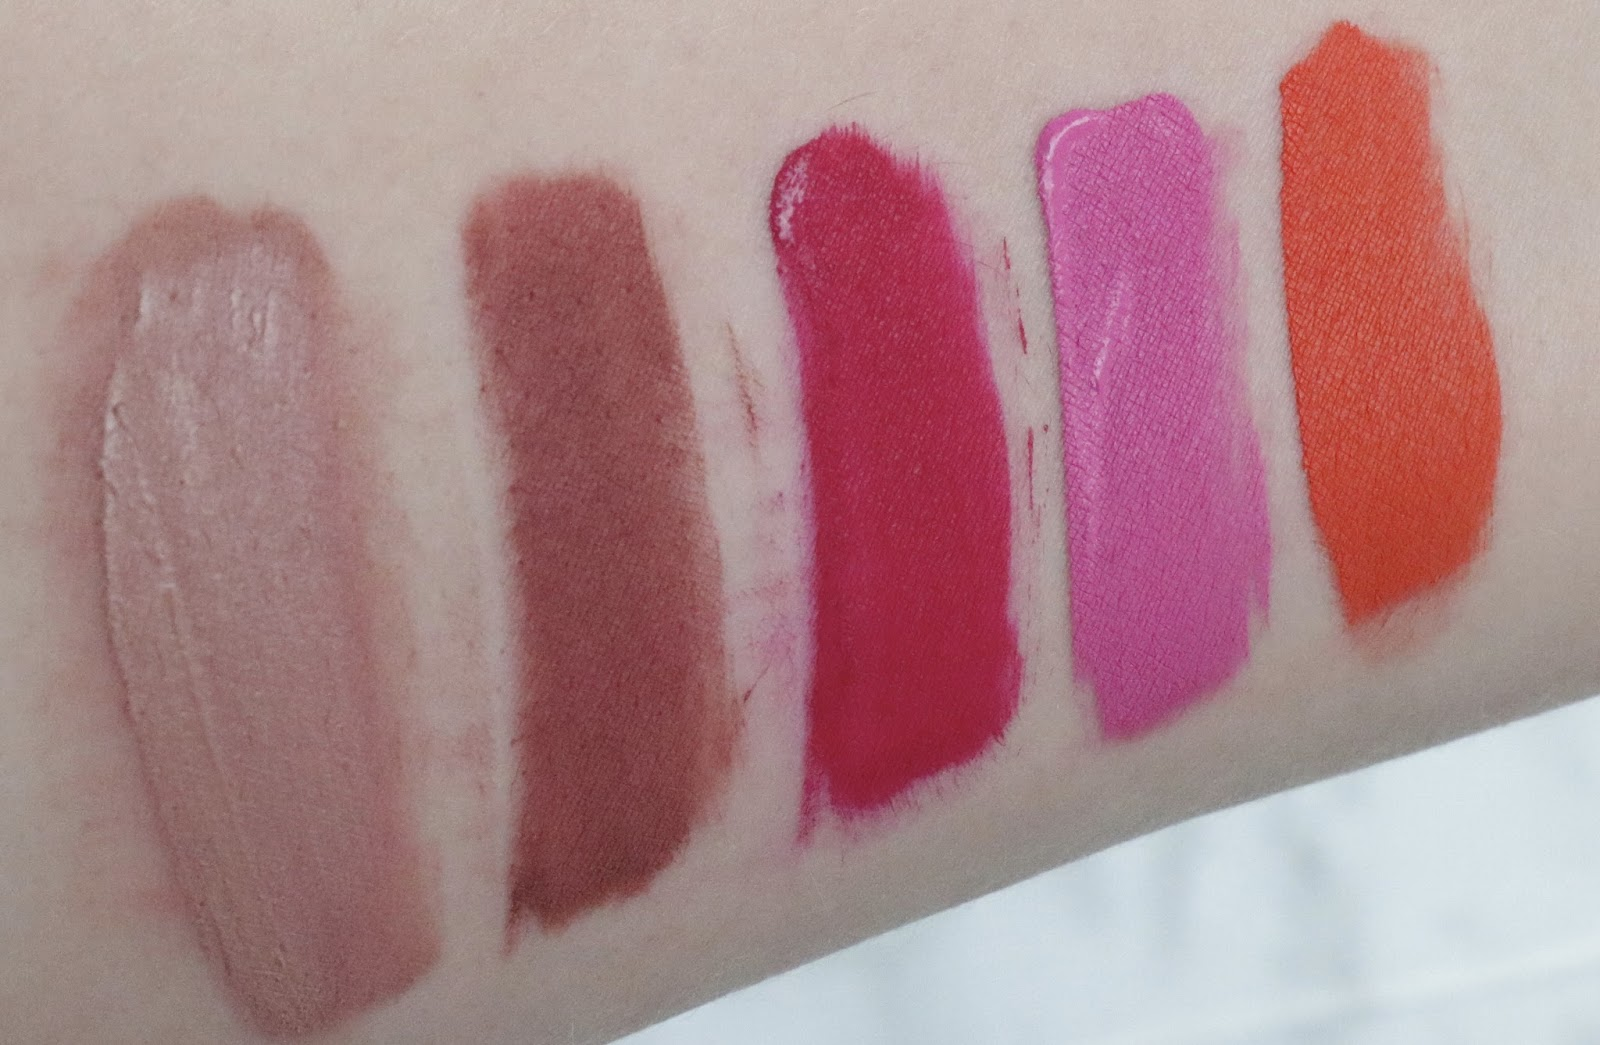 Melted Matte Liquified Matte Long Wear Lipstick by Too Faced #12